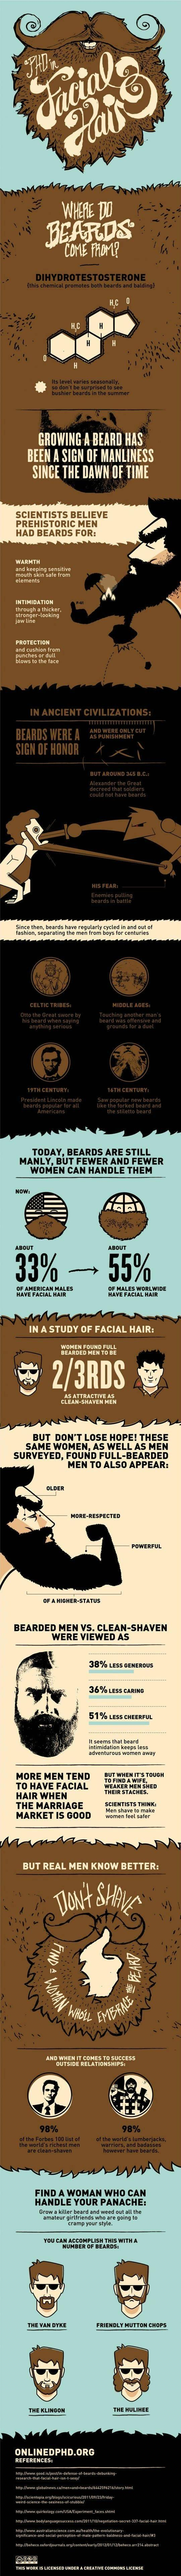 infographic about beards